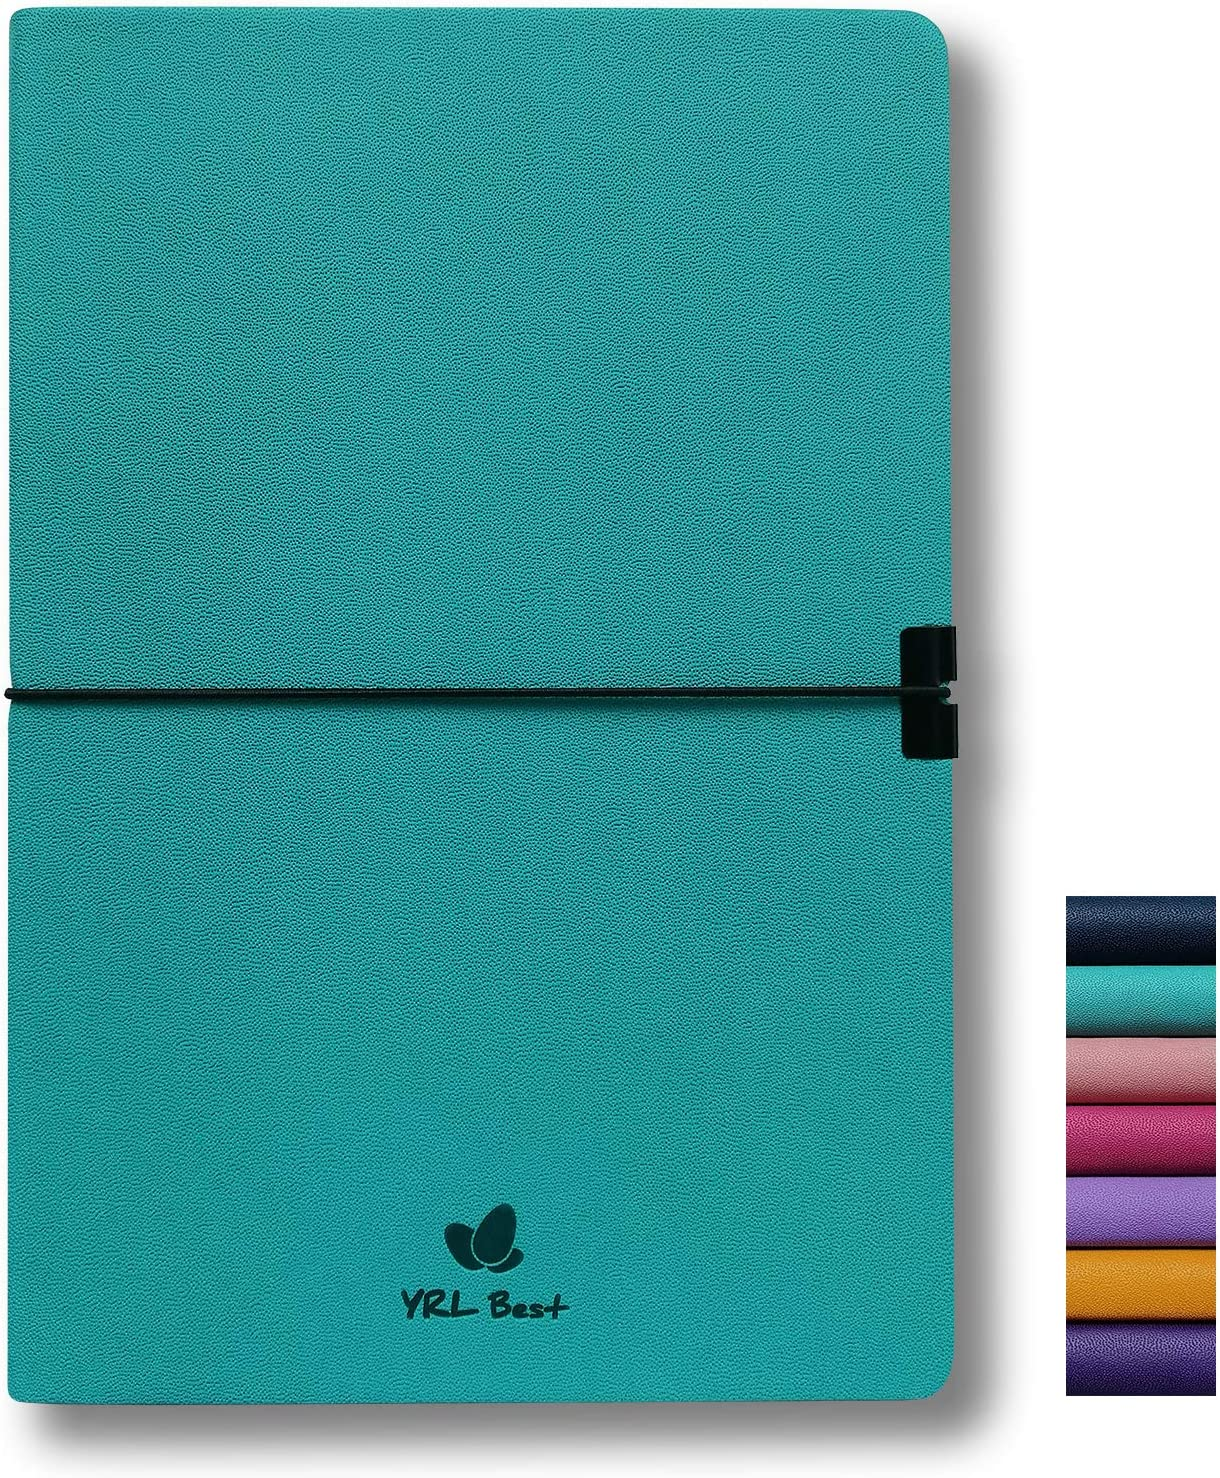 "YRL Best Writing Journal Notebook, College Ruled/Lined, A5 Size, 5.8x8.3"", Fine PU Leather, 160 Pages of Premium Thick Paper, Sewn Bound, Inner Pocket, Elastic Band, Ribbon Bookmark, Lays Flat, Teal"